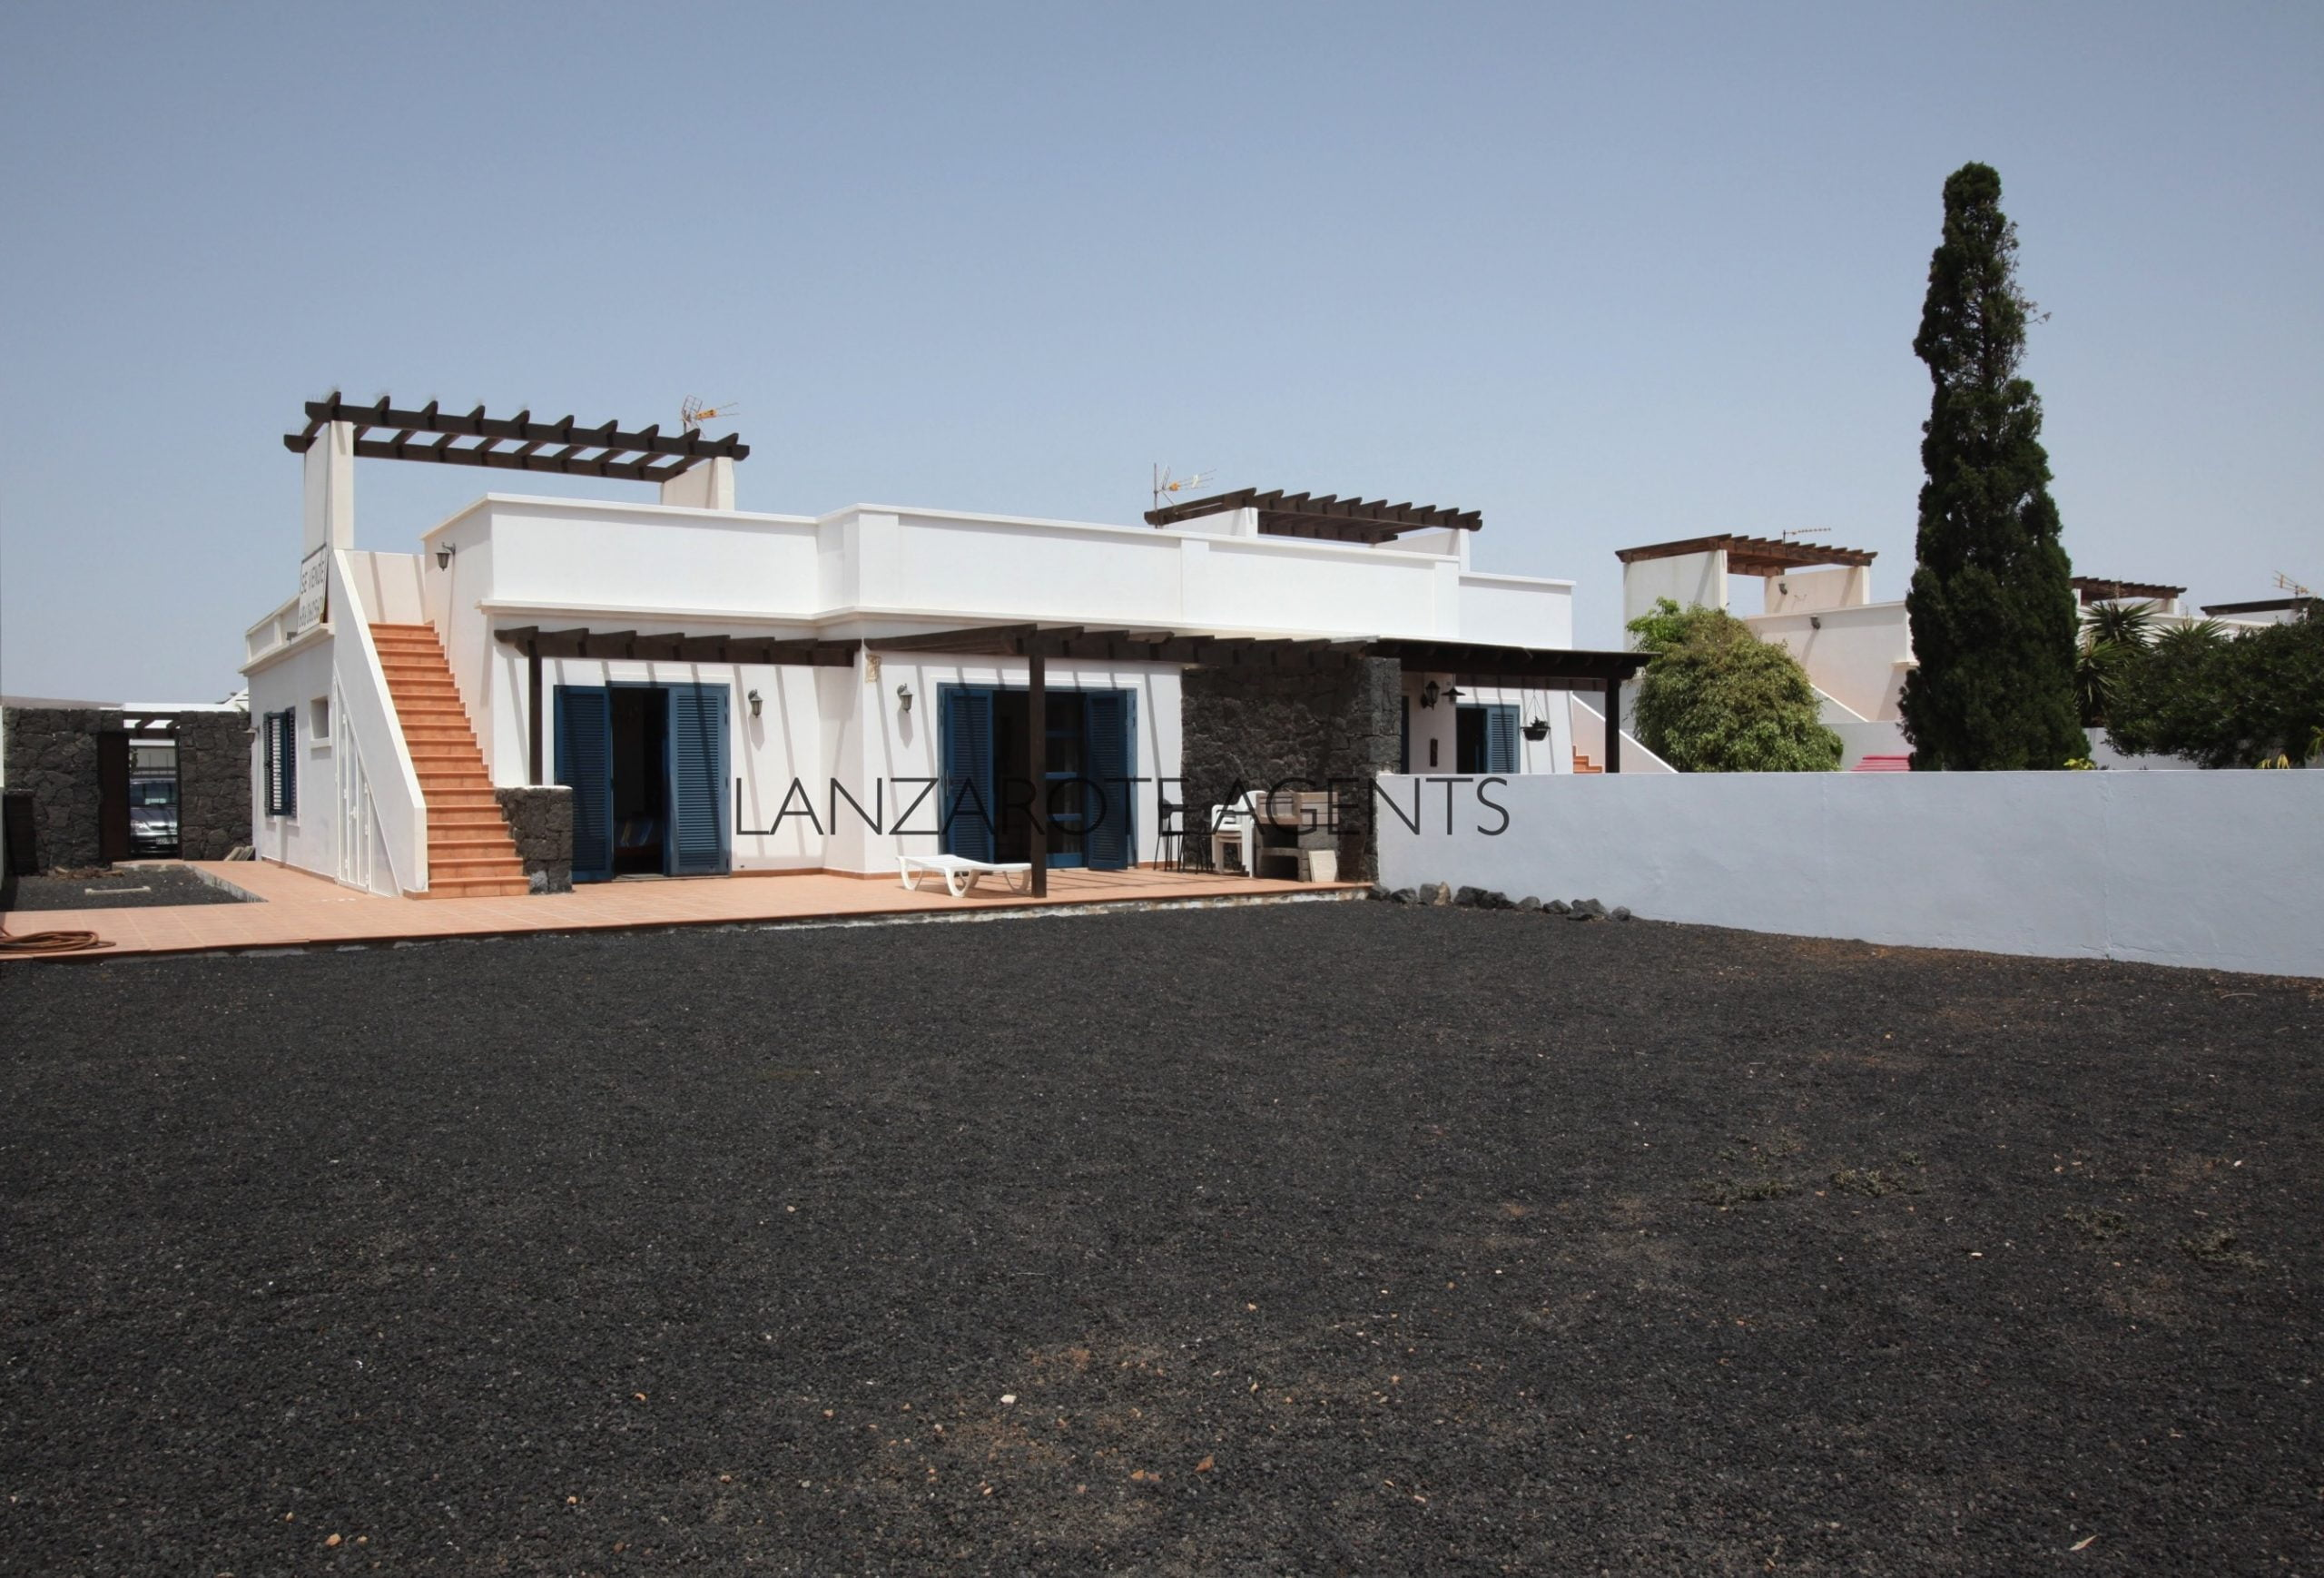 Lovely Semidetached Three Bedroom Villa Near Playa Blanca Town Centre with Great Potential